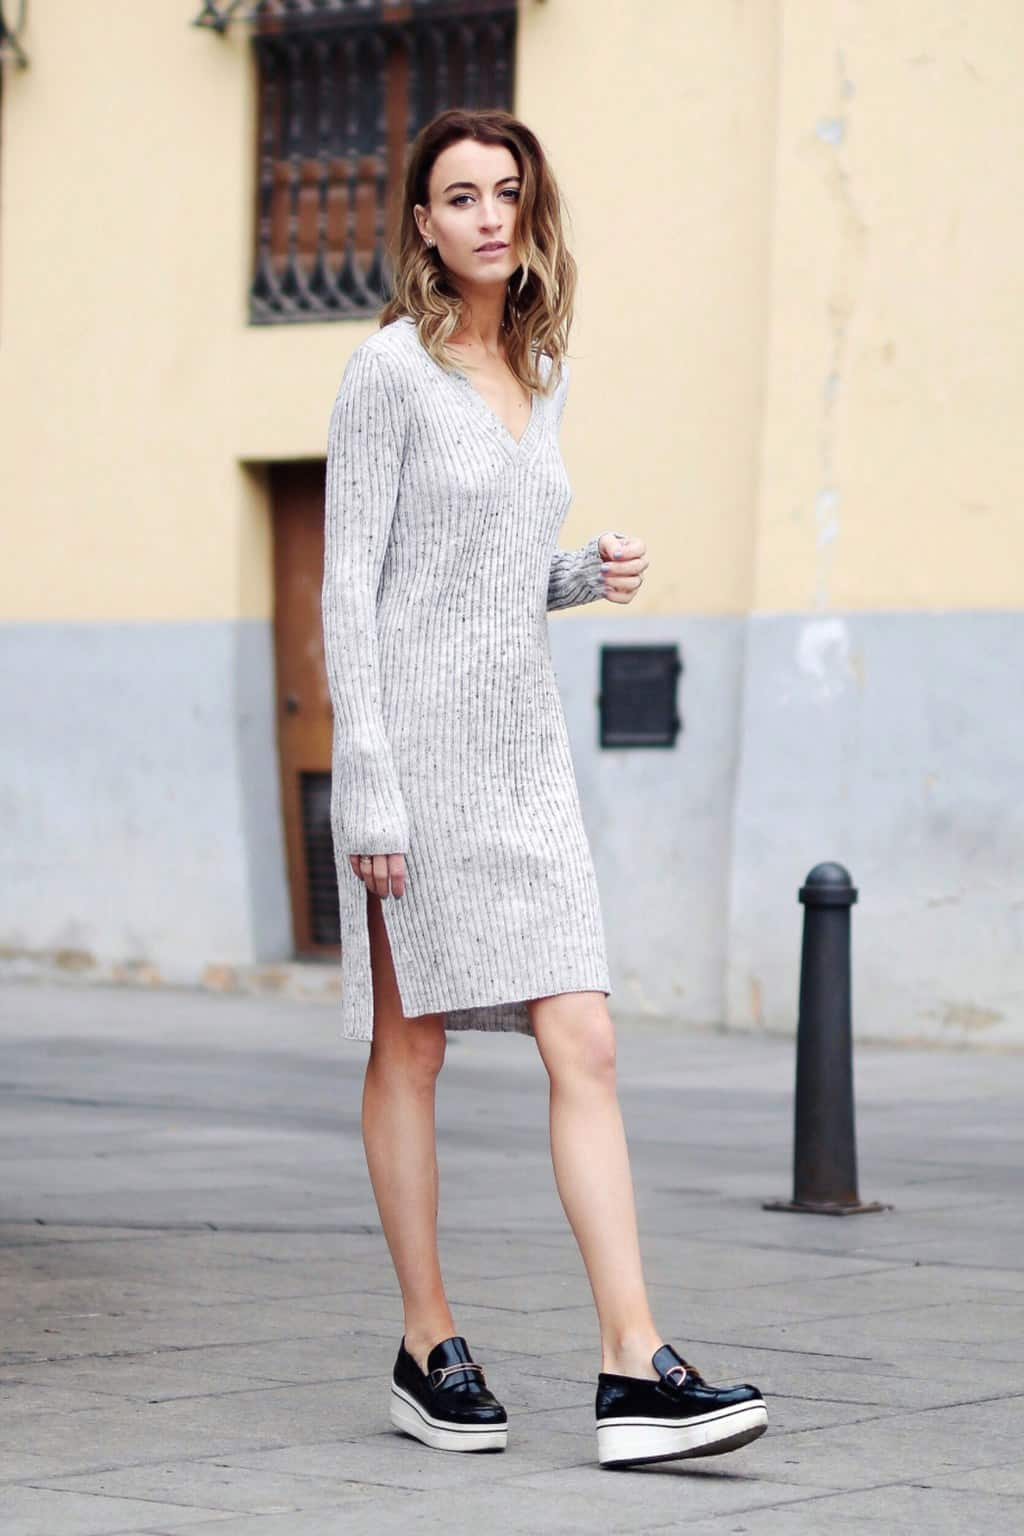 Sweater dress and loafers